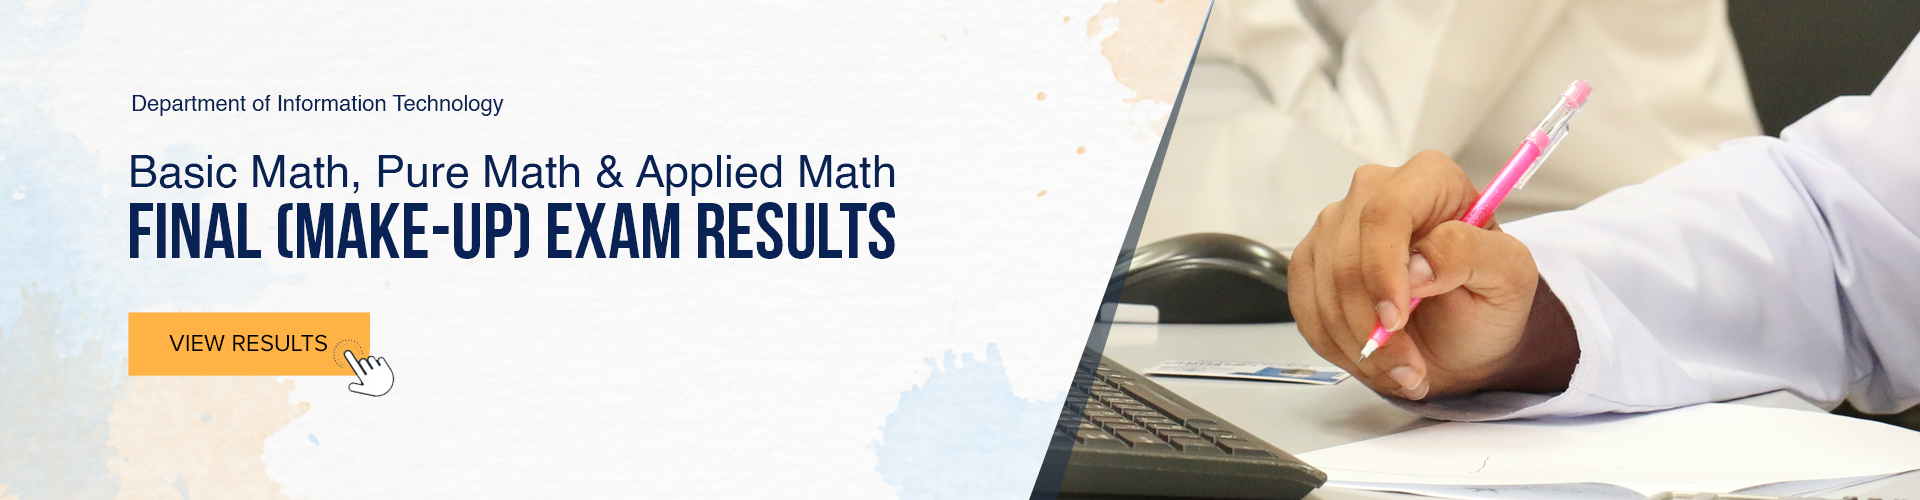 Applied Math, Basic Math and Pure Math - Final Make-up Exam Results